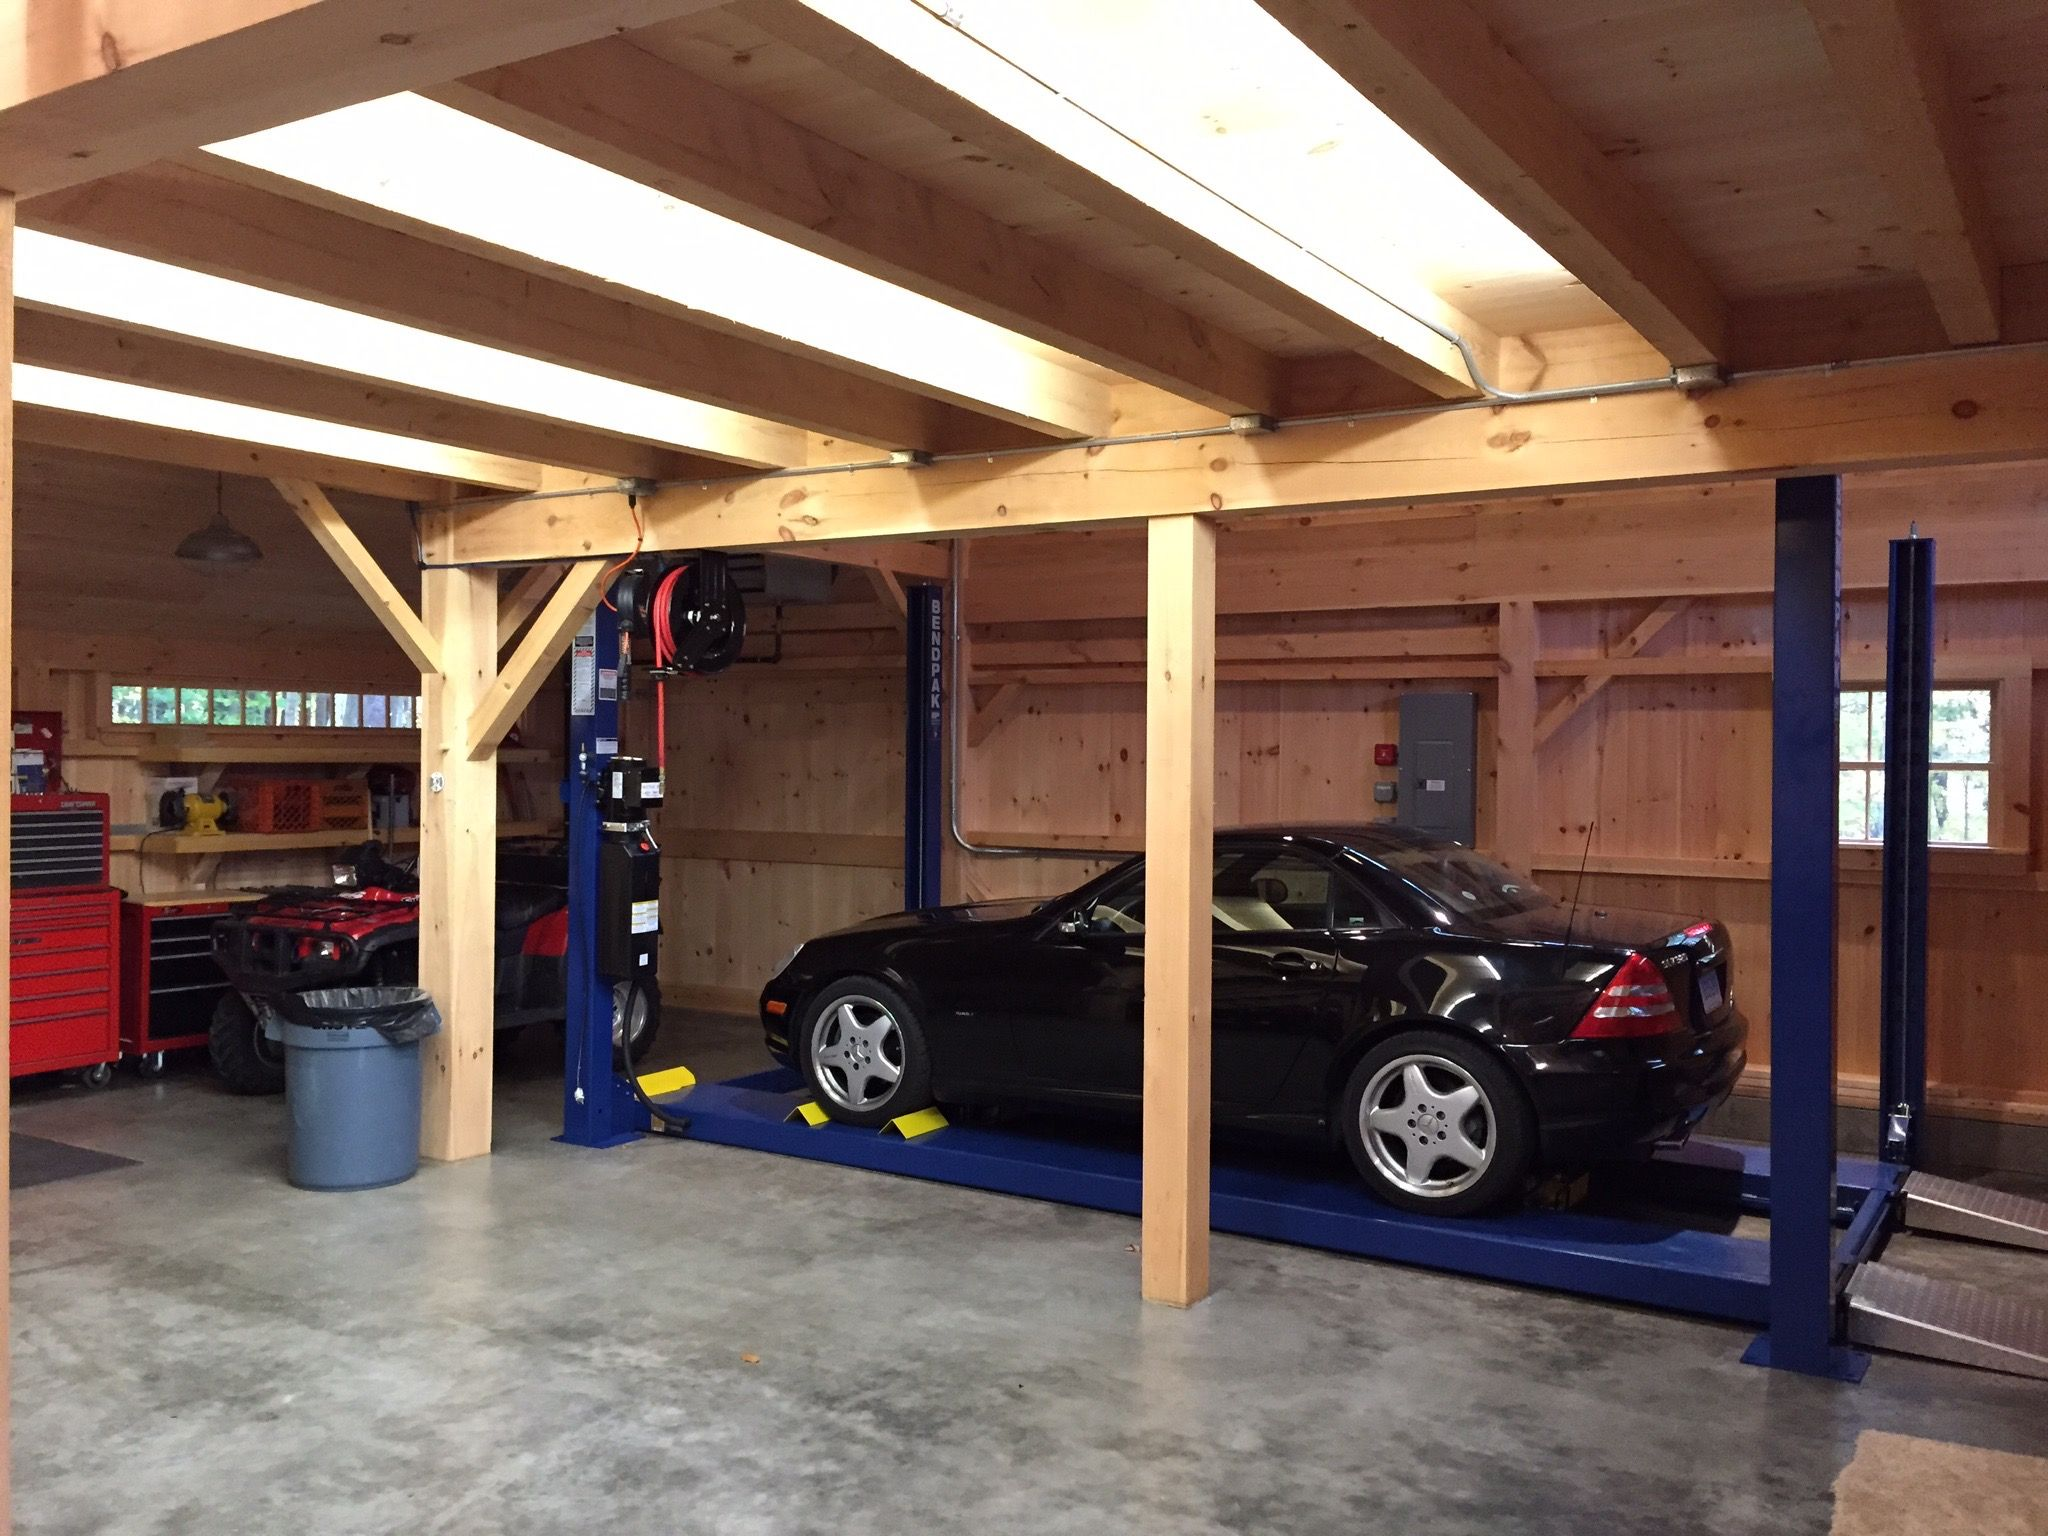 Car lift bay in our 1 1 2 story barn open to roof above for Car lift garage plans